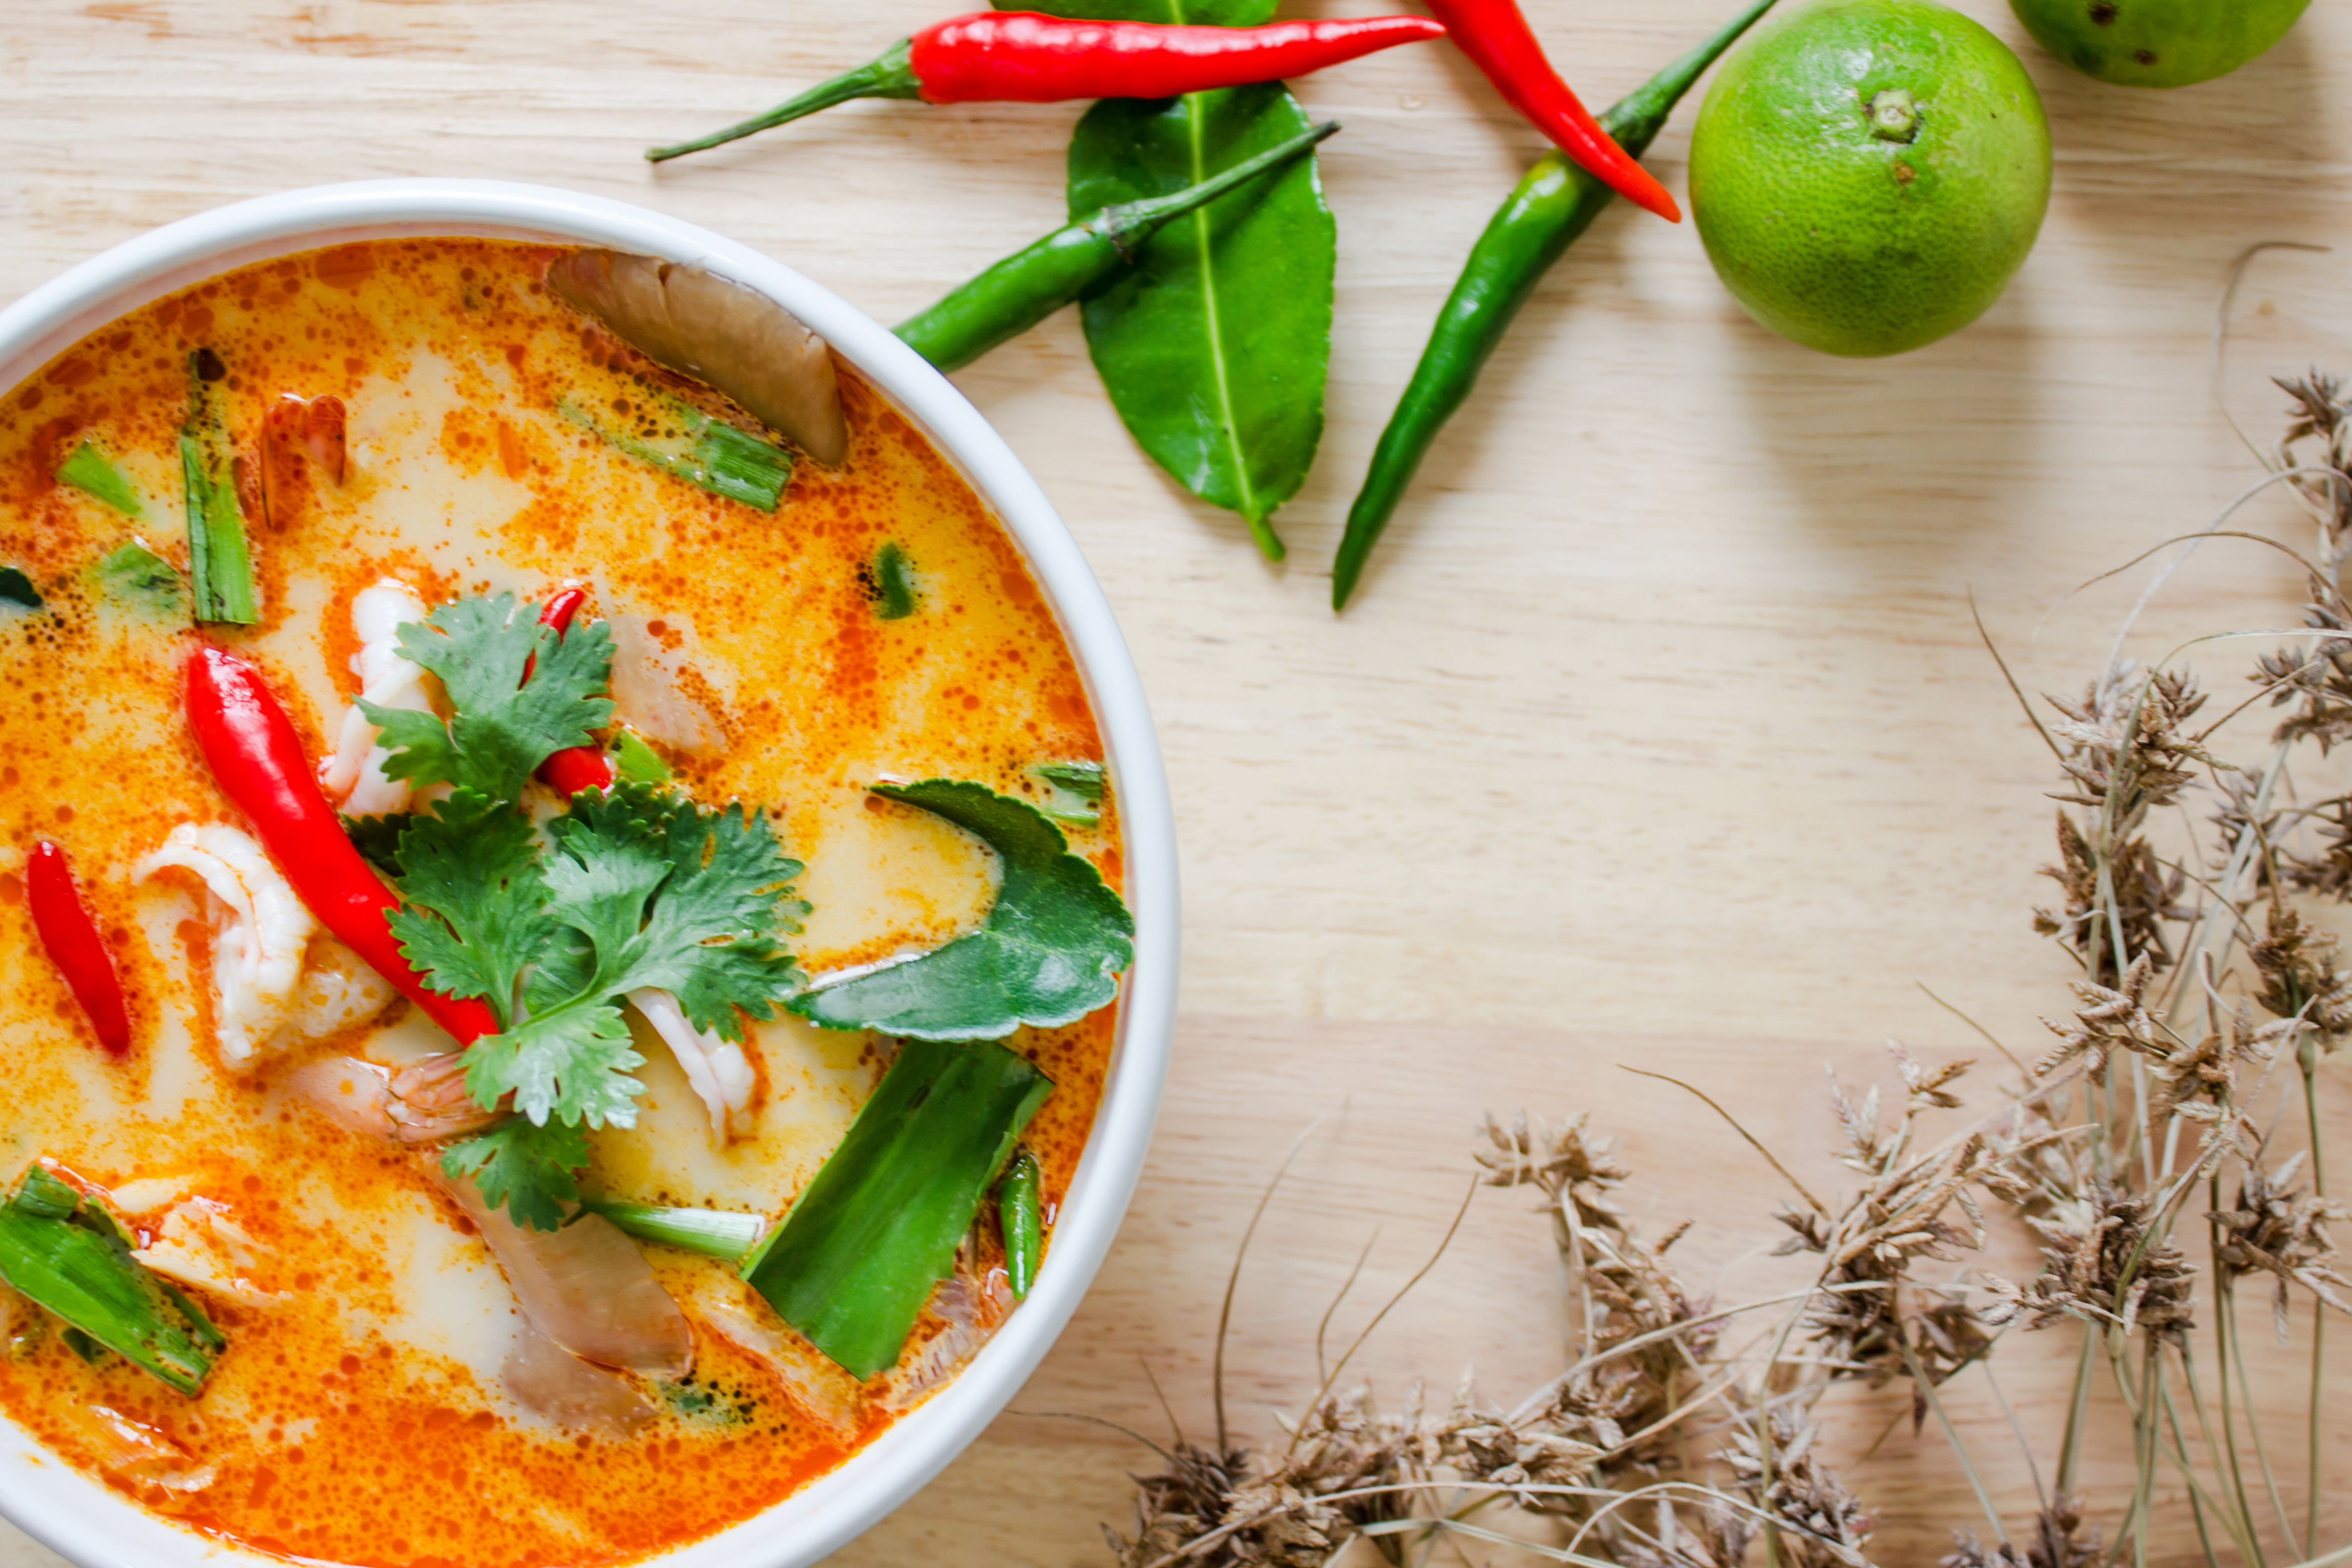 Tom Yum Soup Recipe to Spice Up Your Life - Only 97 Calories!